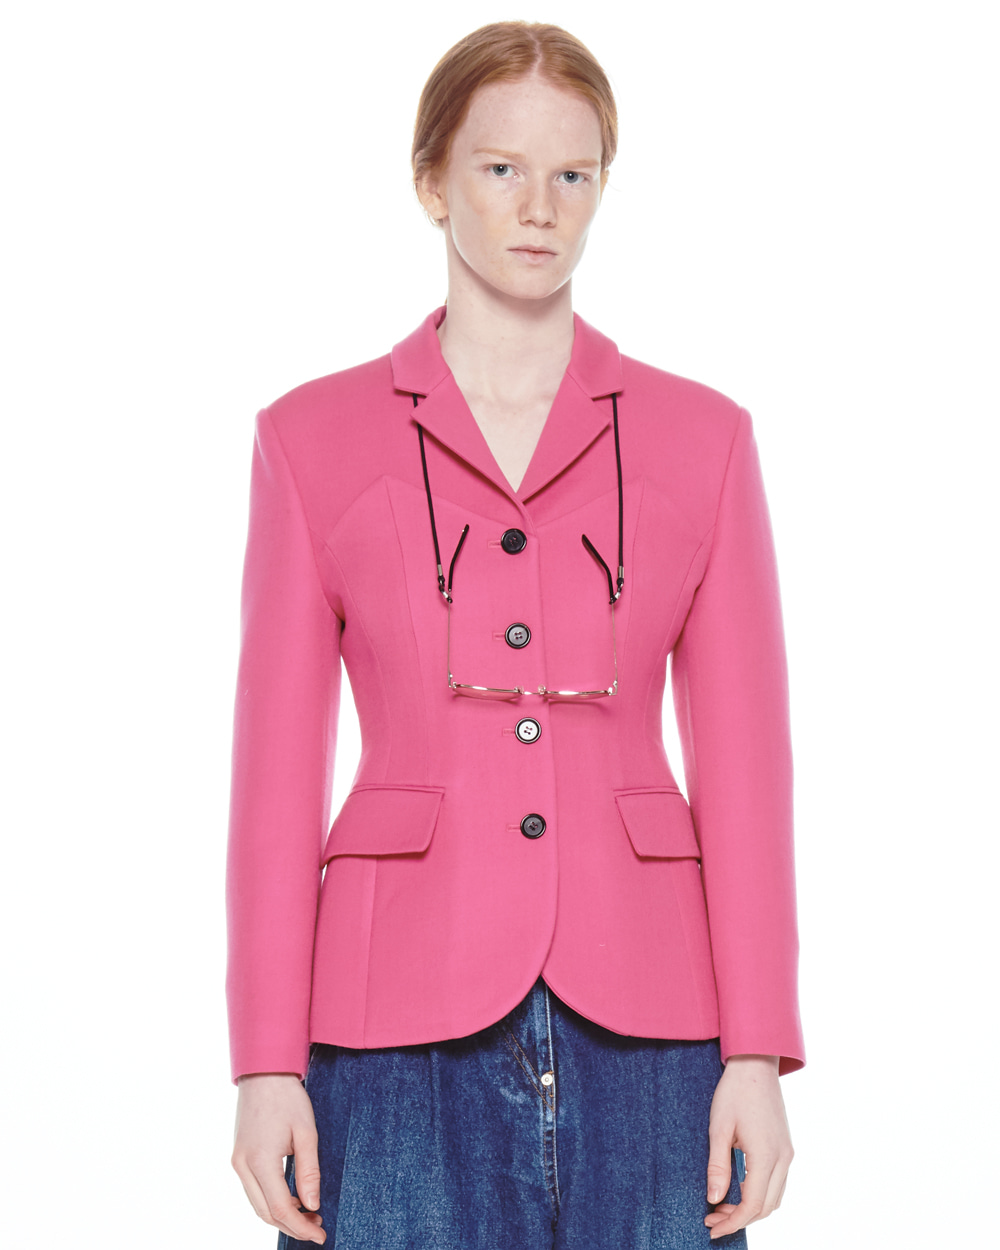 FW20 BUSTIER CURVE PINK JACKET